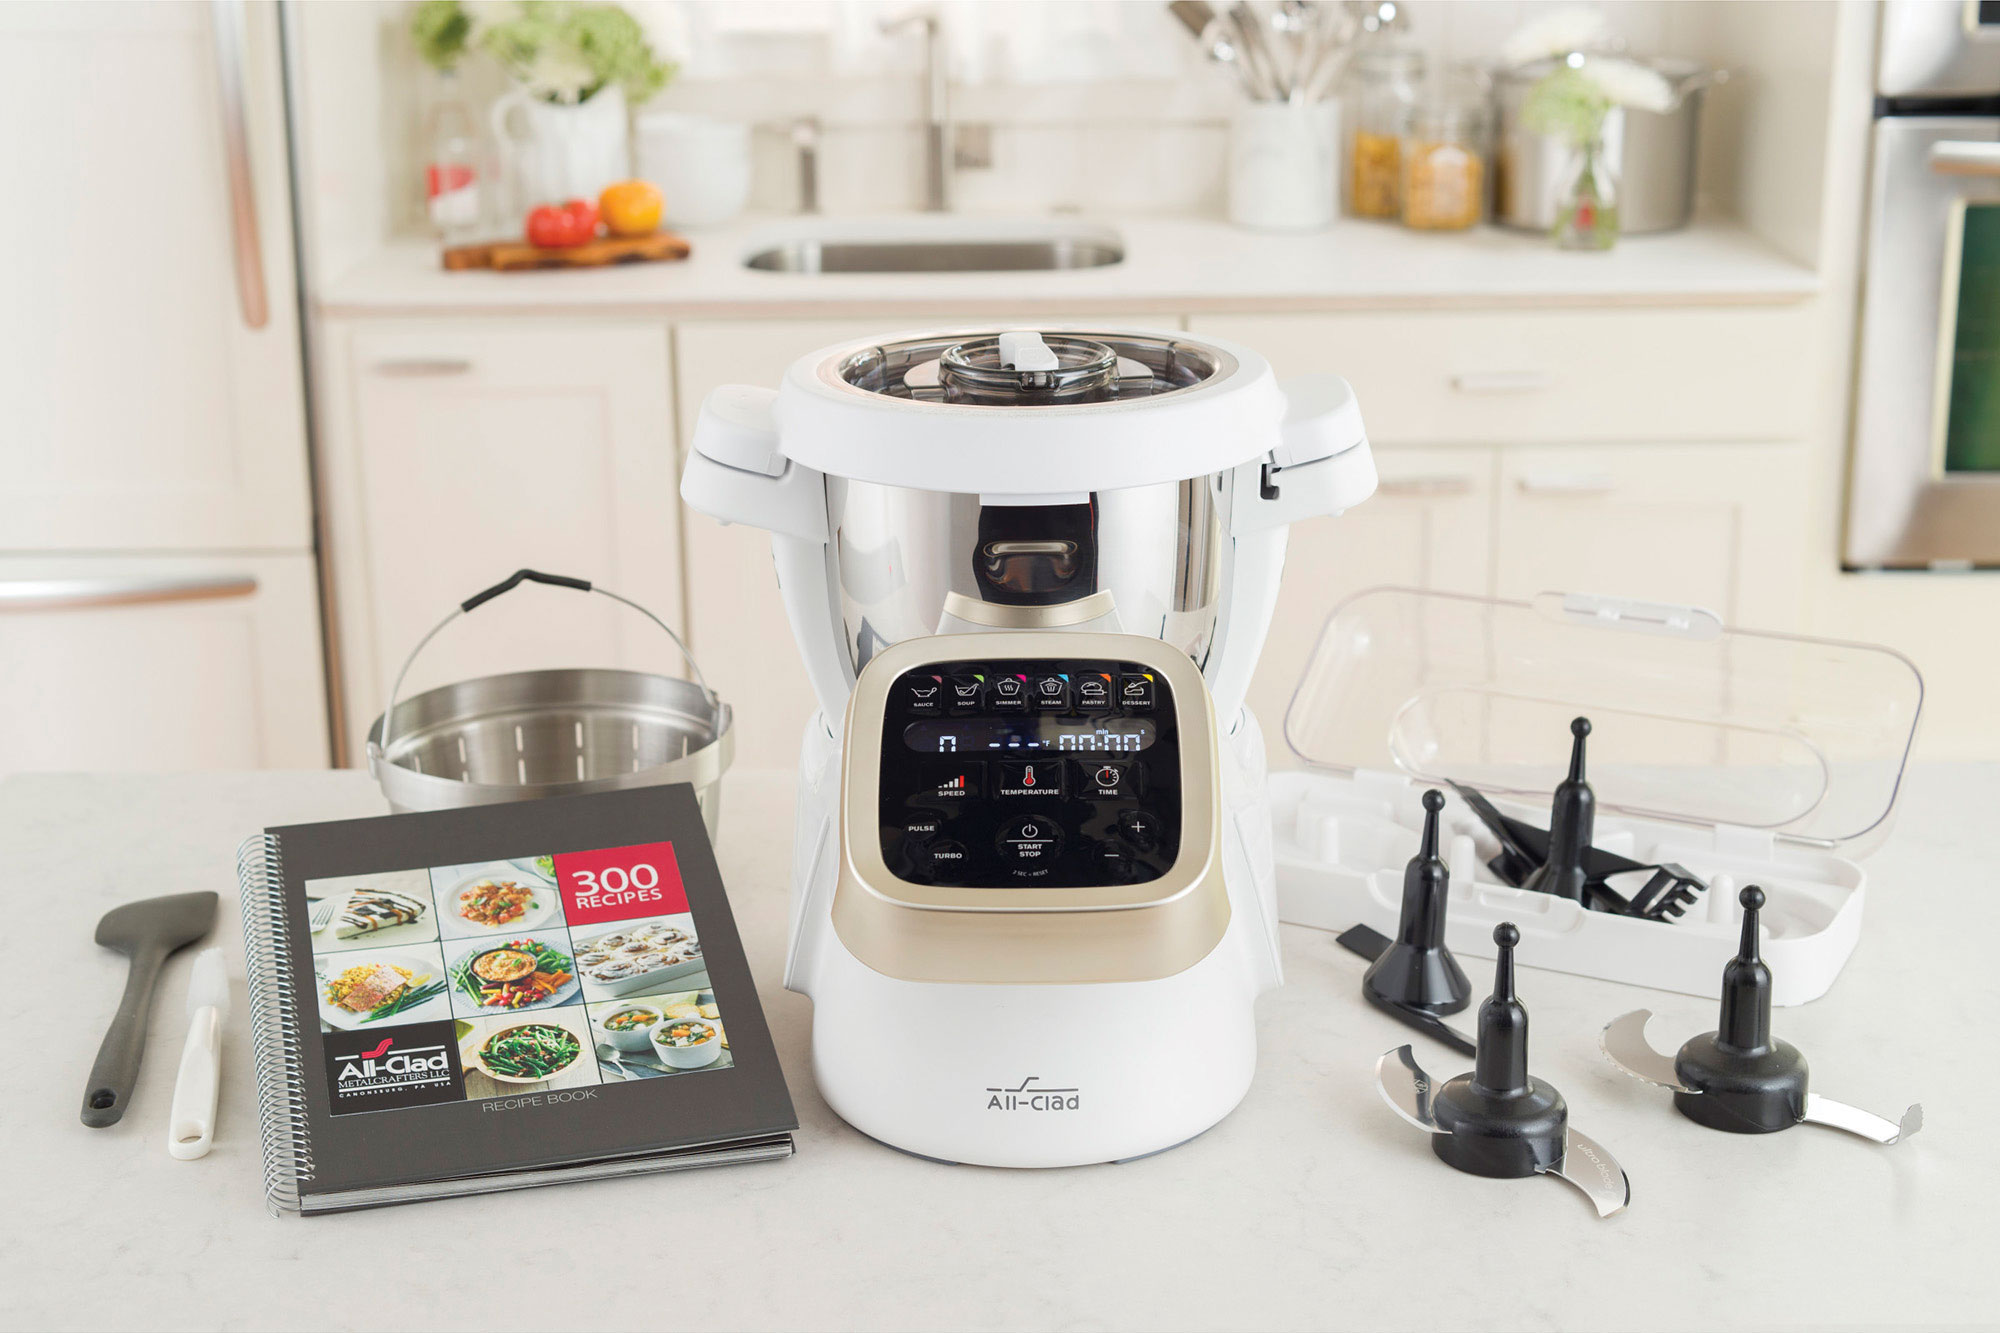 All In One Kitchen Appliance.All Clad Prep Cook All In One Appliance